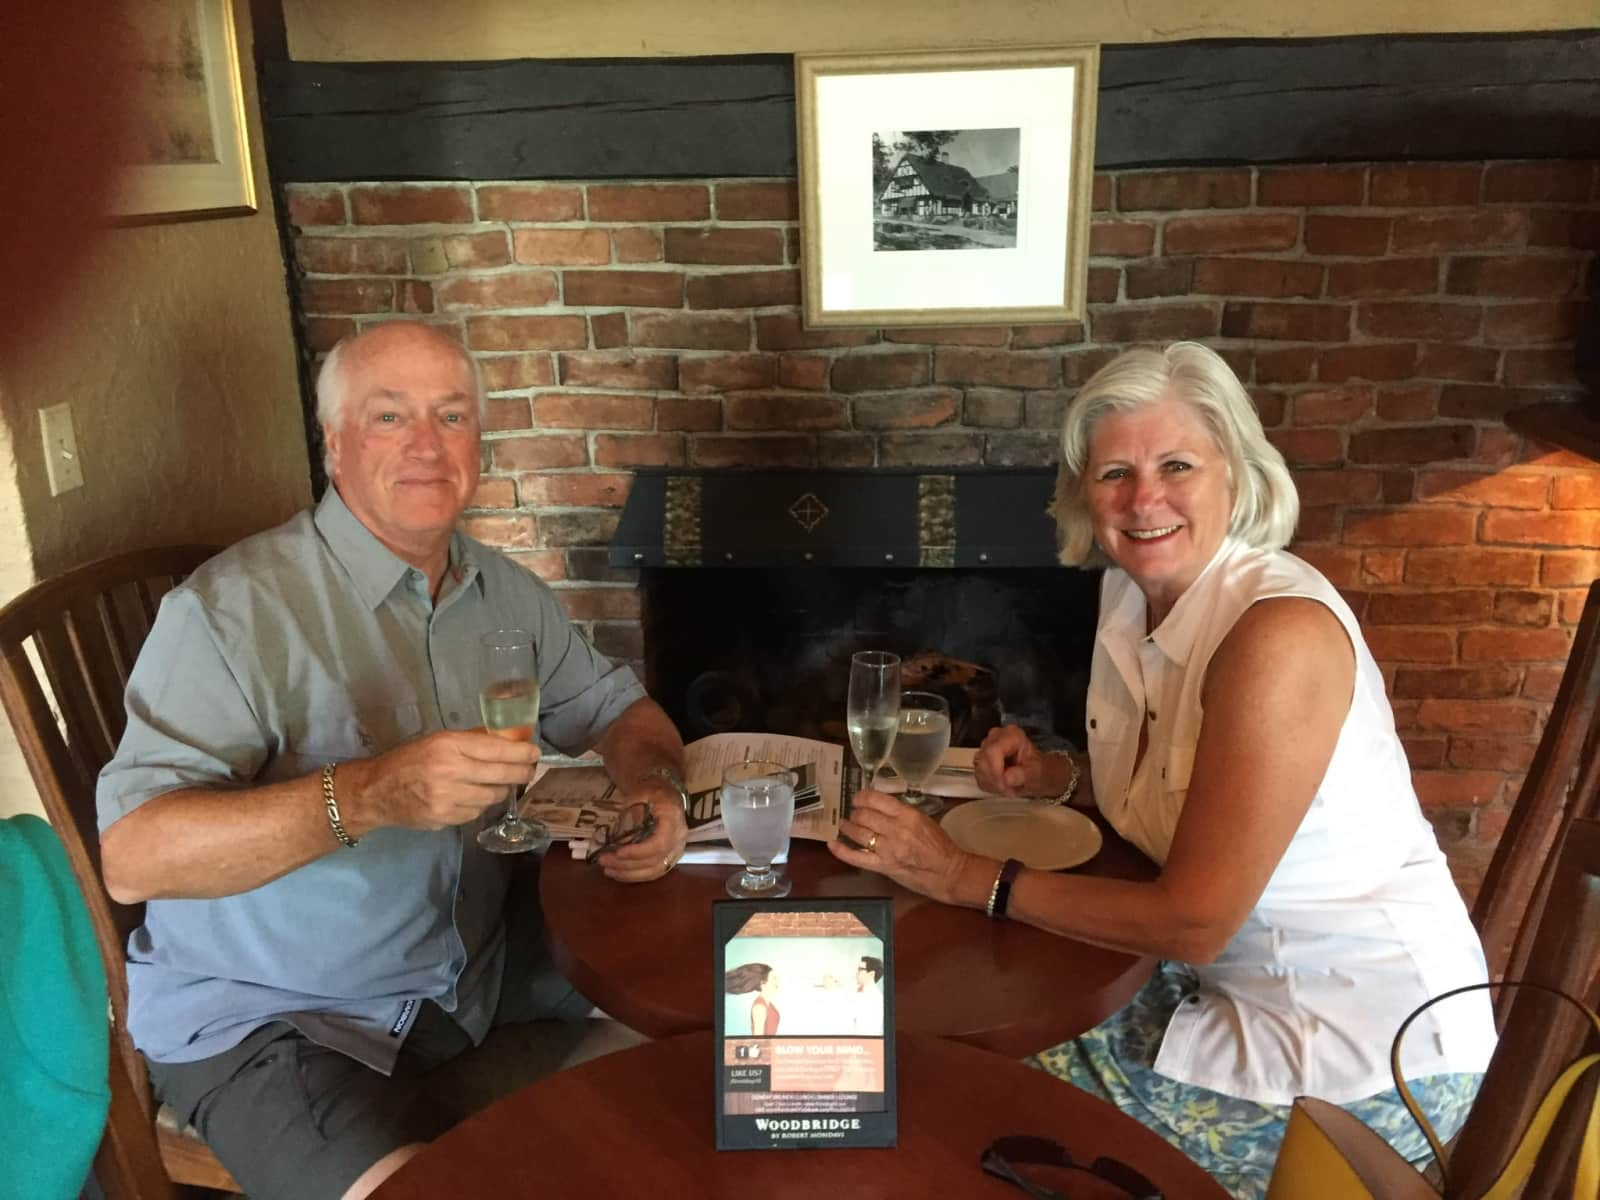 Merrilee & Bruce from Victoria, British Columbia, Canada